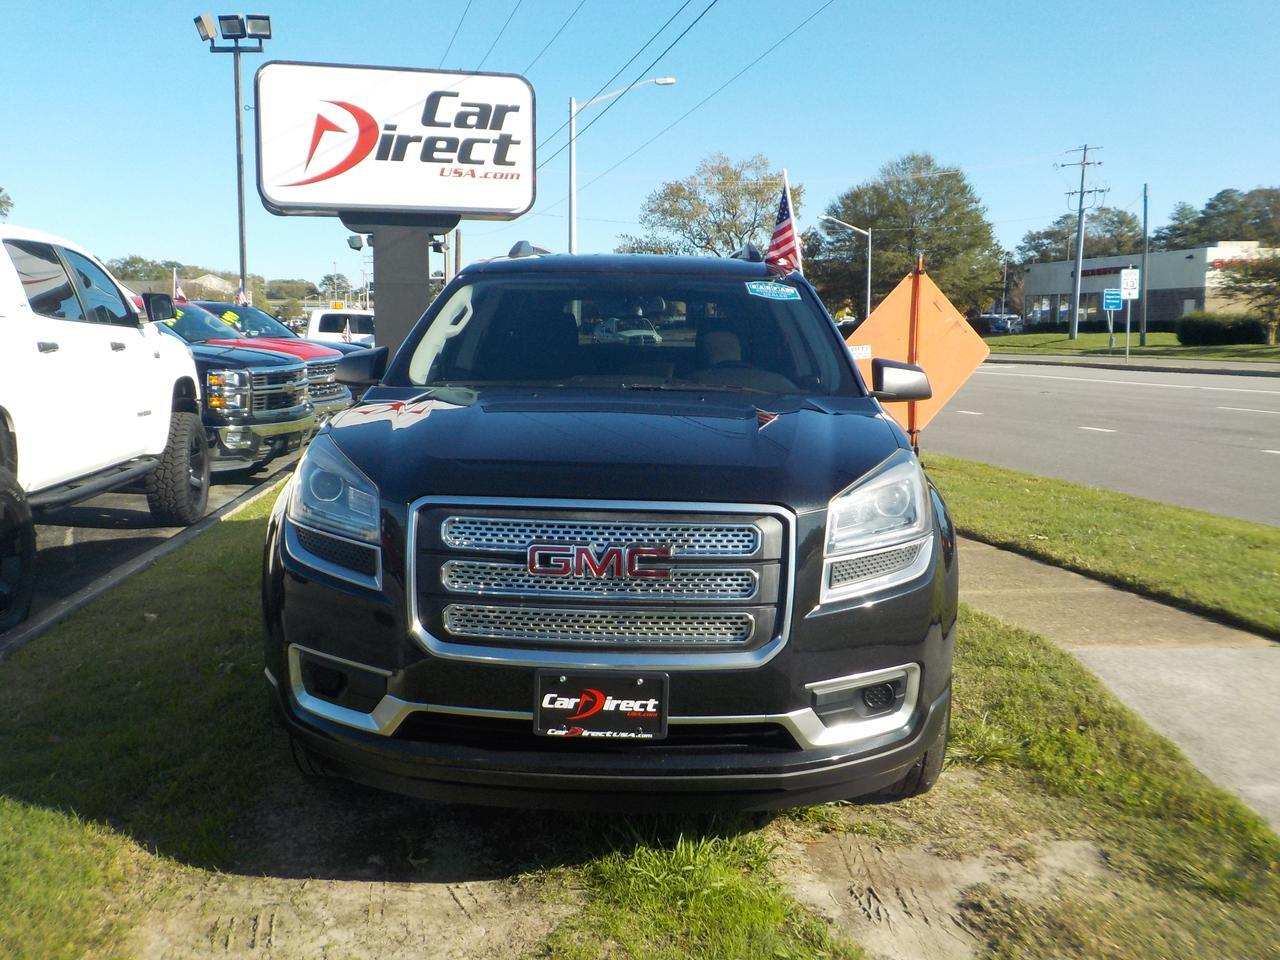 2013 GMC ACADIA SLE, BACKUP CAM, ROOF RACKS, PARKING SENSORS, 3RD ROW SEATING, LOW MILES! Virginia Beach VA